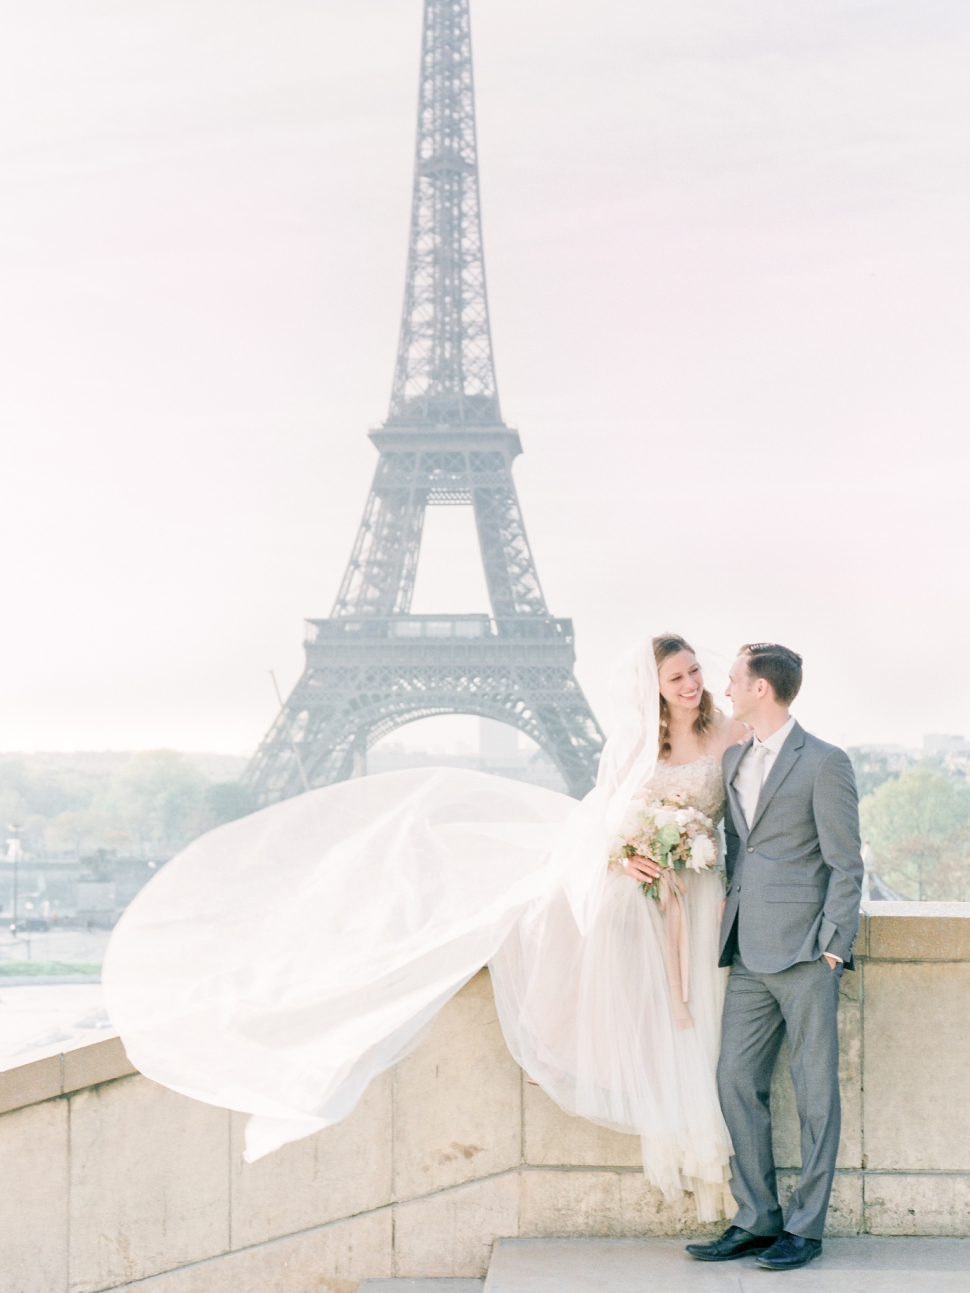 Paris-France-Destination-Wedding-Photographer-Cassi-Claire-Shangri-La-Paris-Wedding-Photos_056.jpg